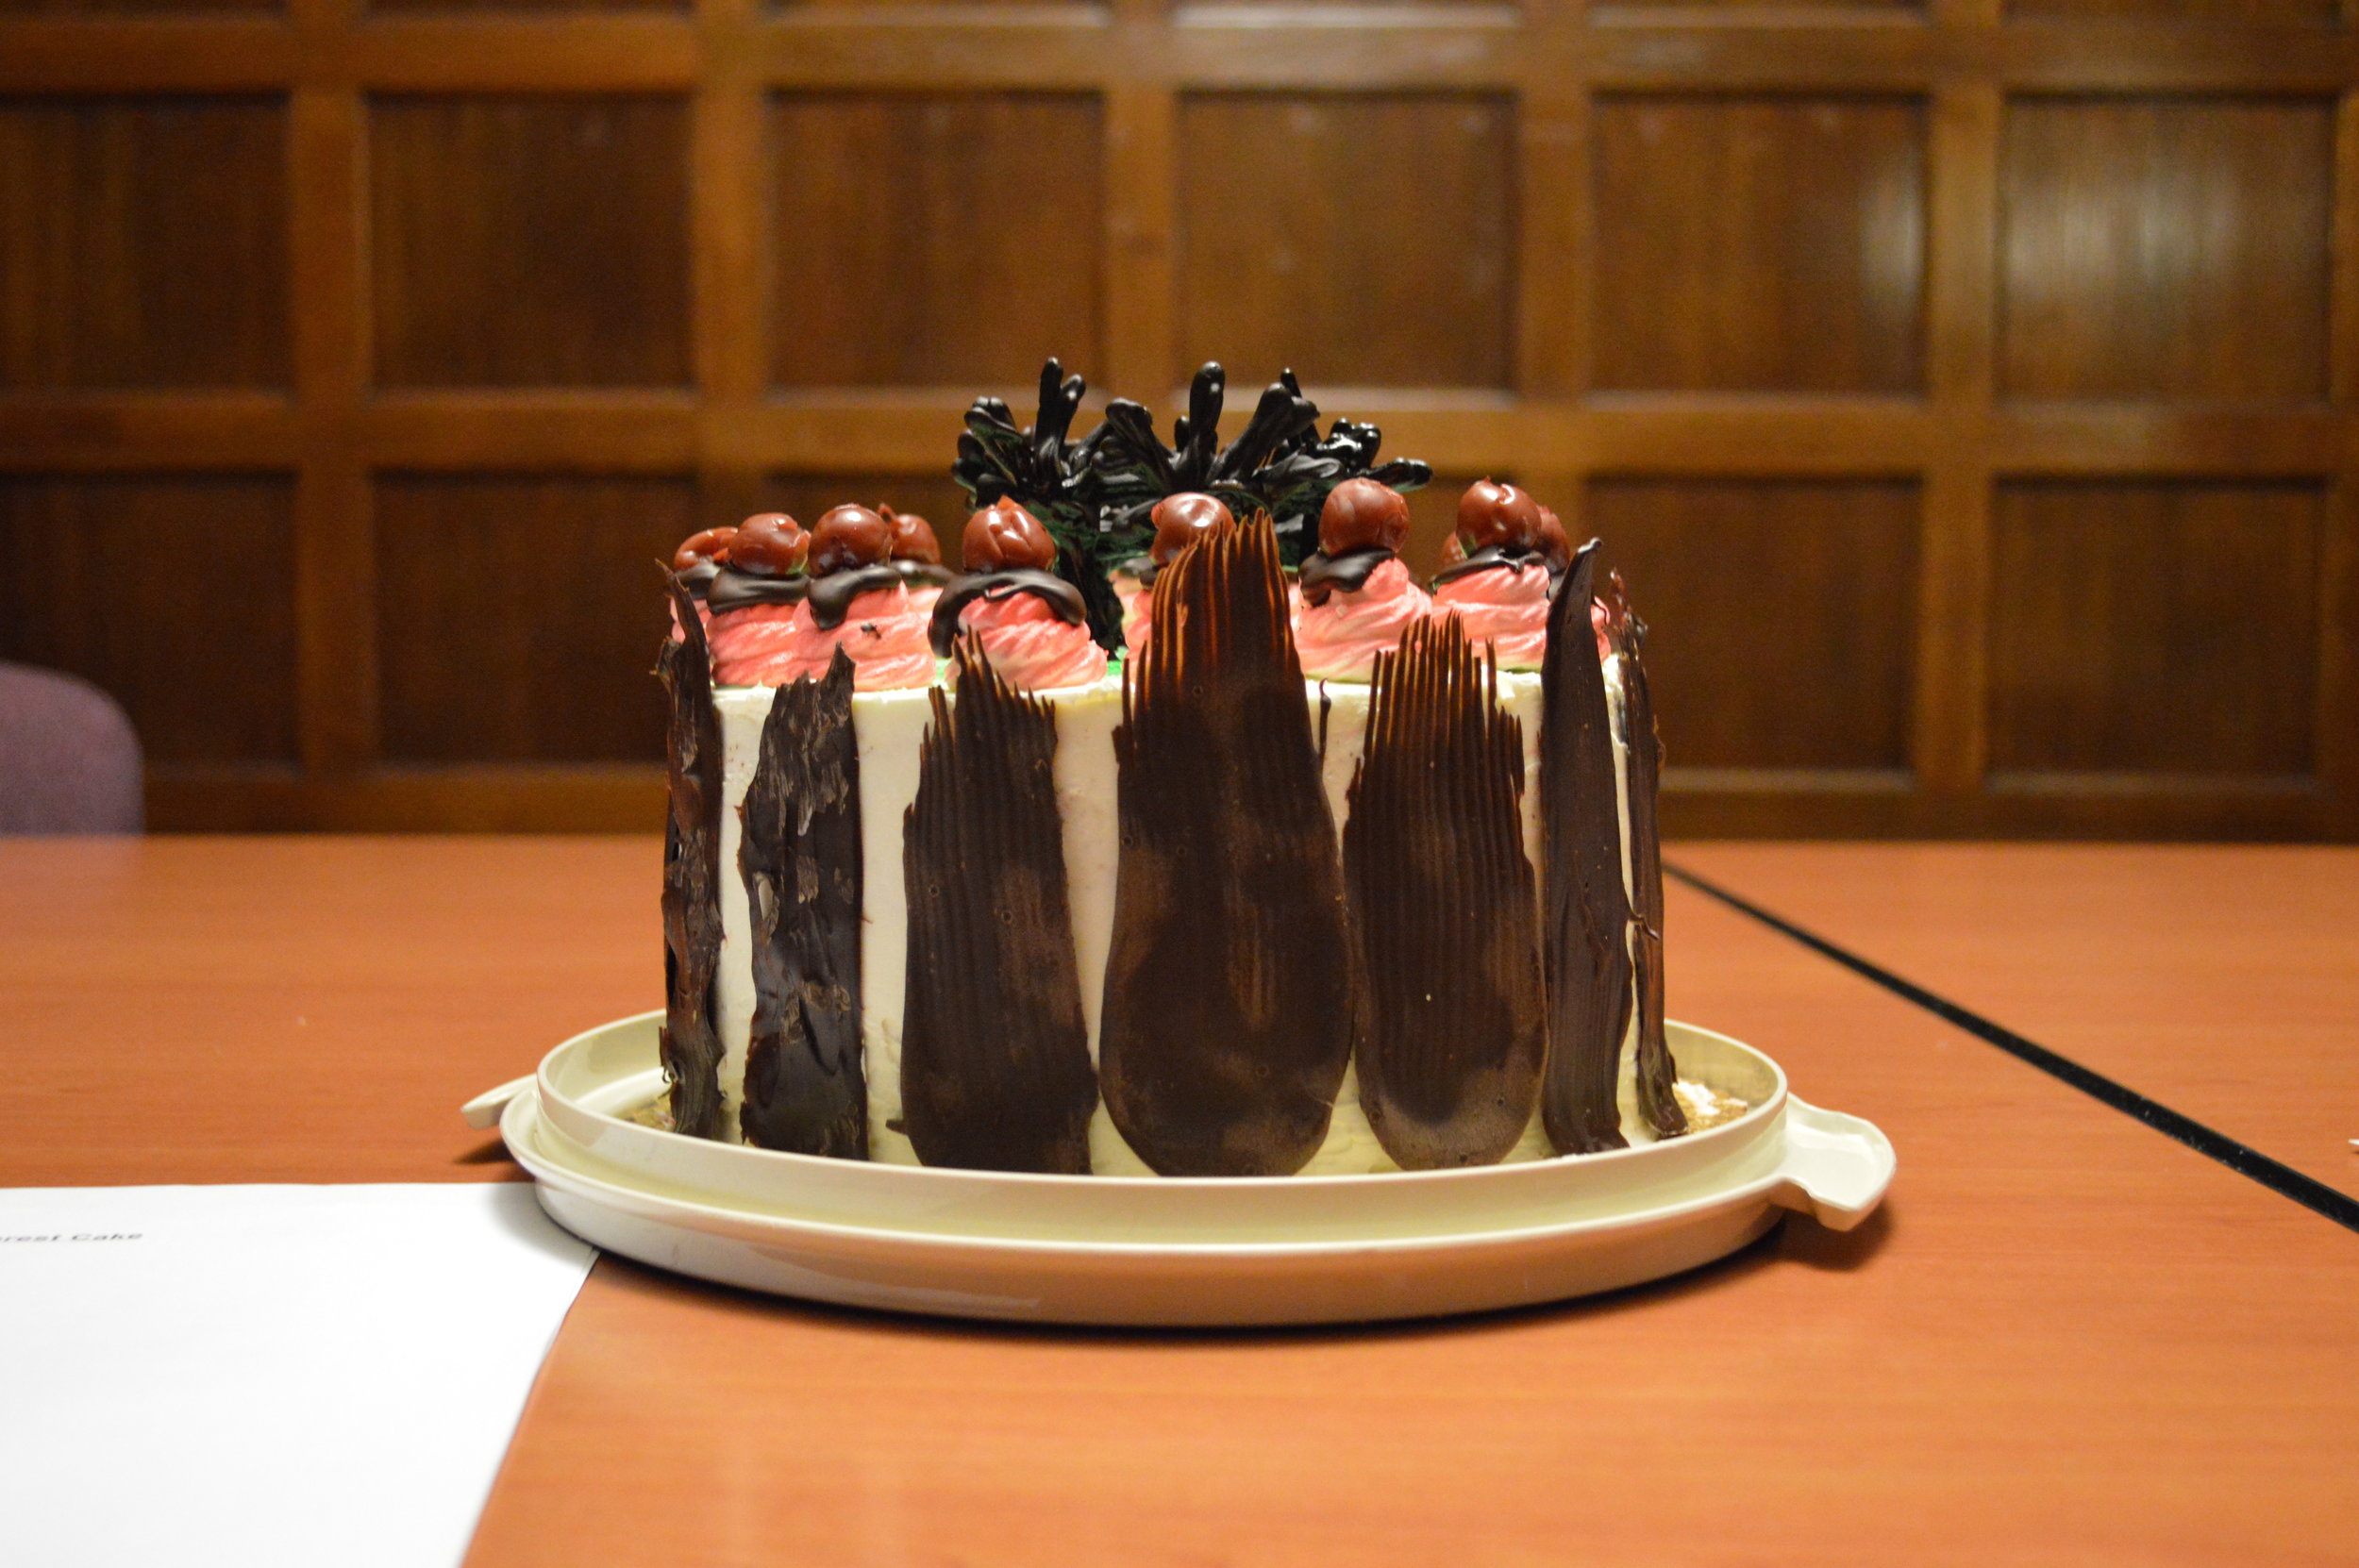 3rd Place - Richard Grabowski, Bidwell Training Center - Black Forest Cake